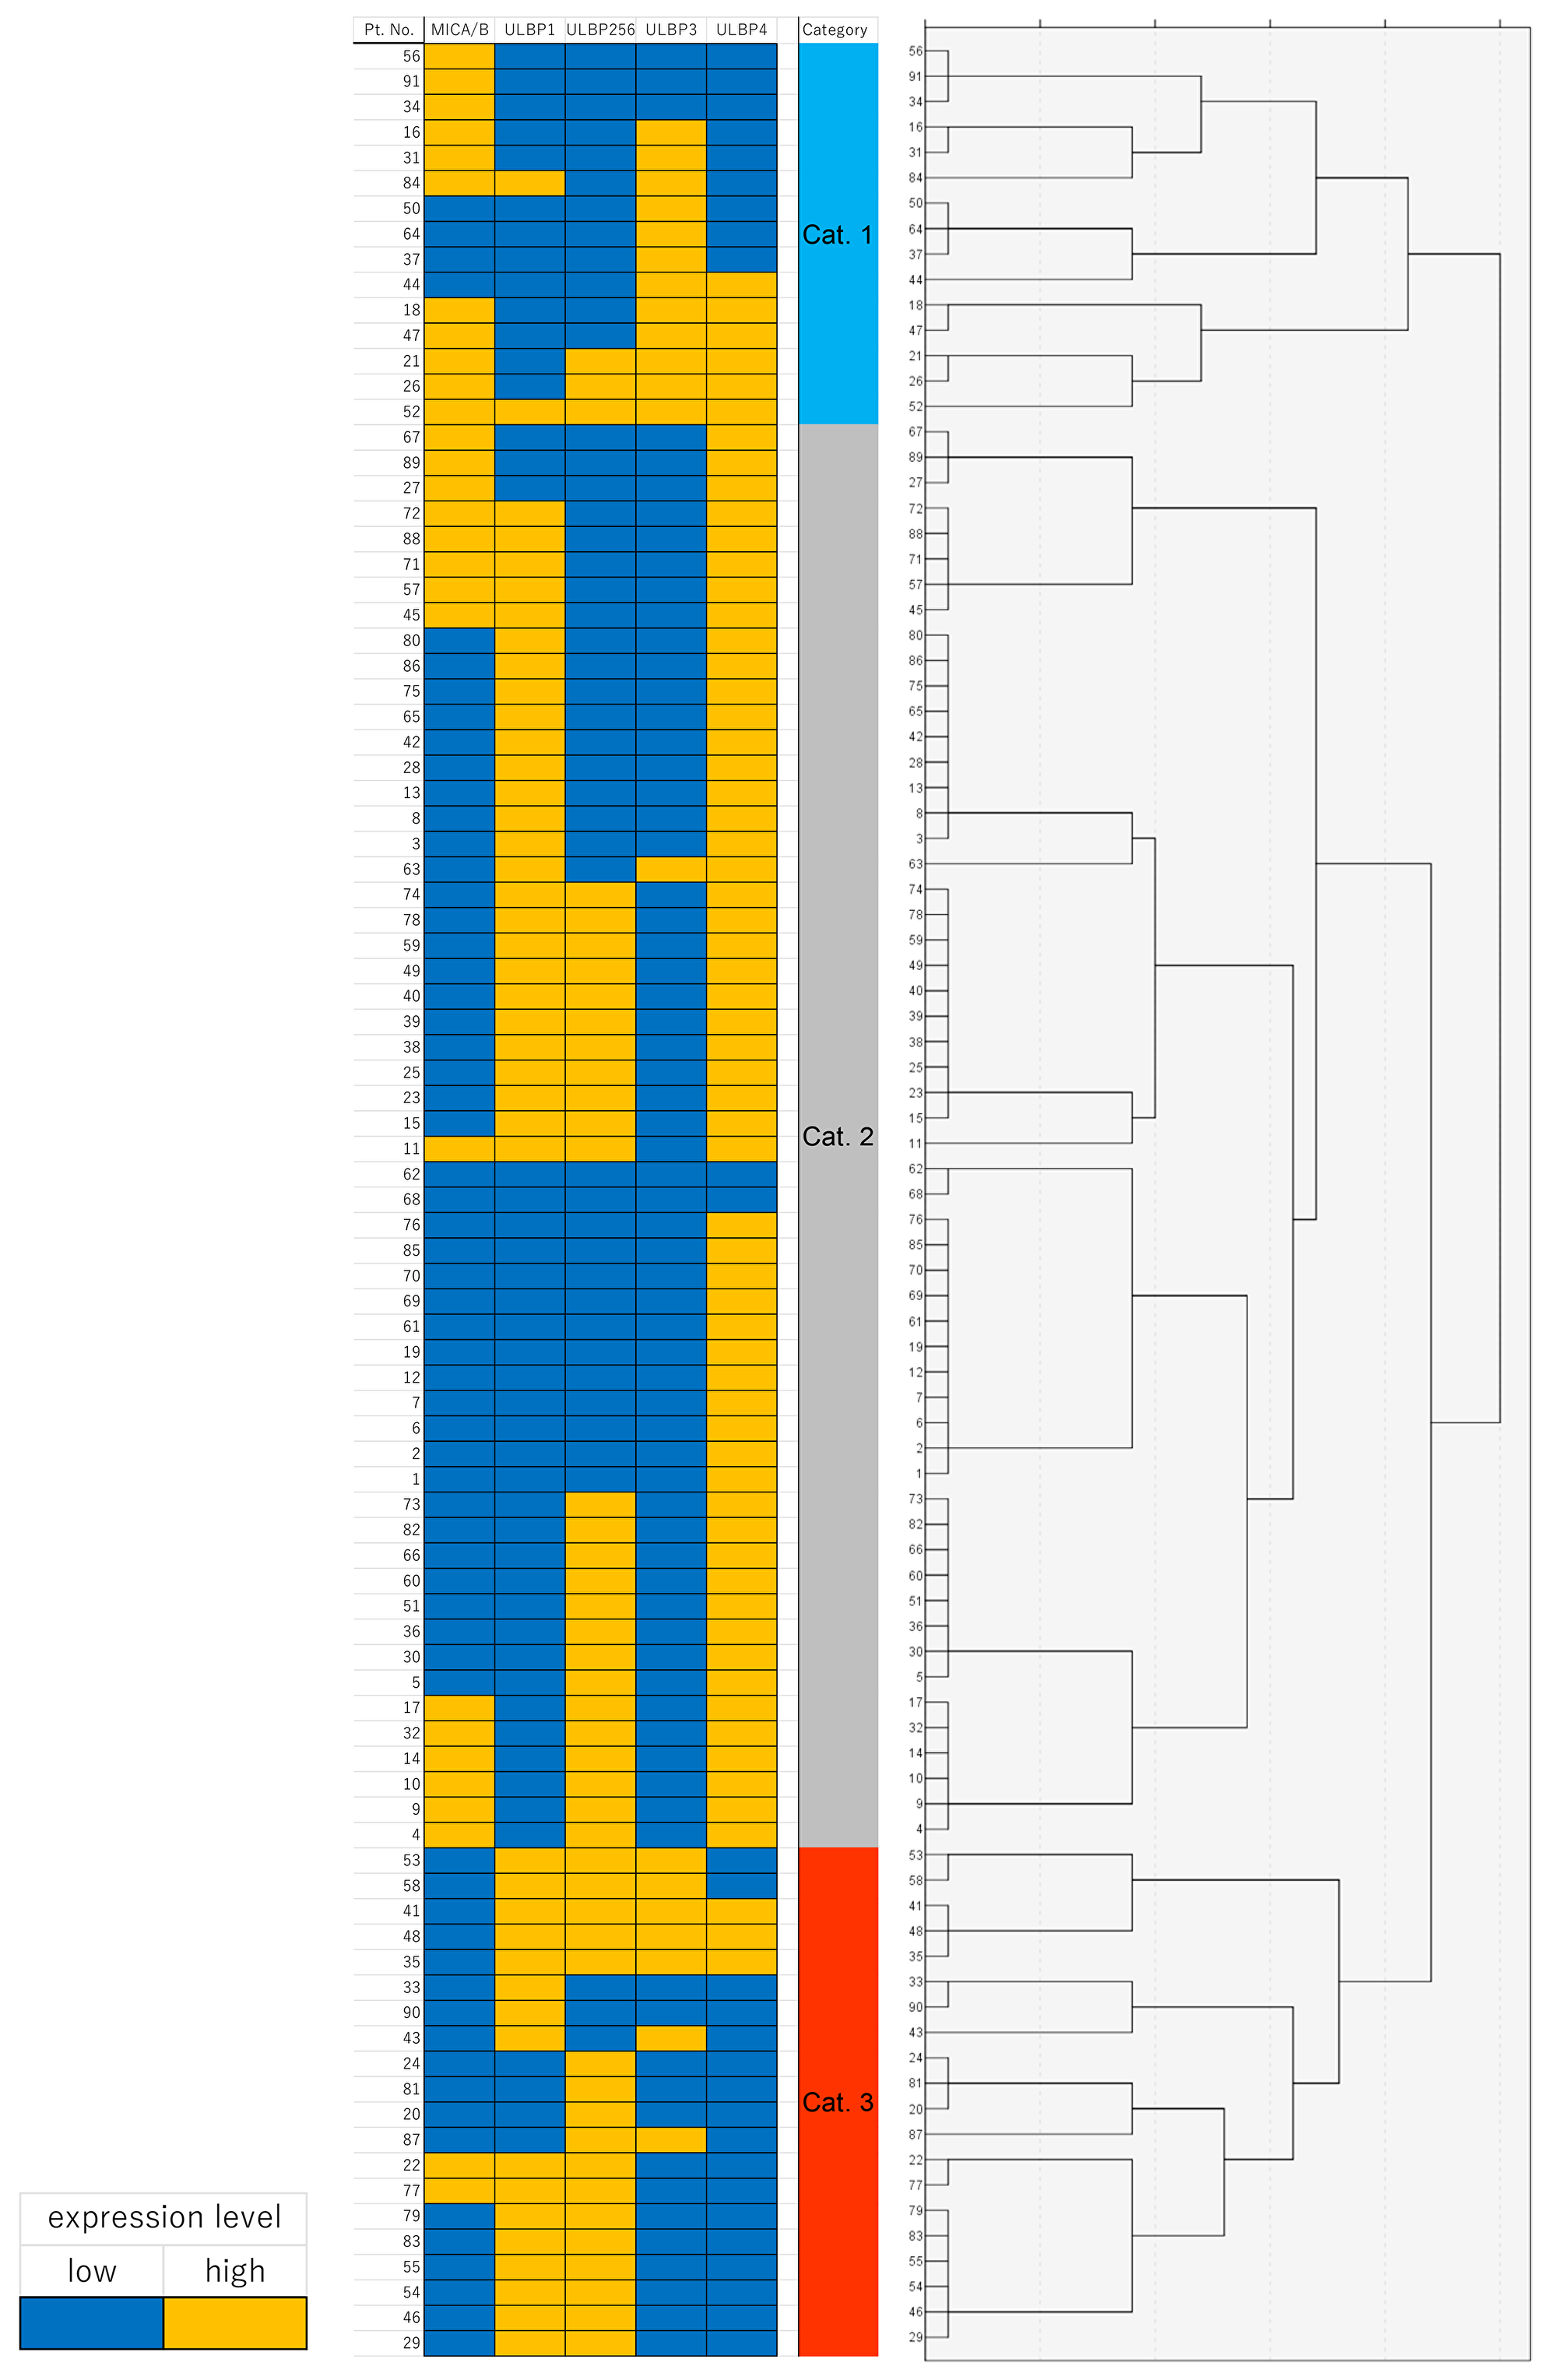 Heat map of immunohistochemical protein expression of MICA/B, ULBP1, ULBP2/5/6, ULBP3, and ULBP4 in the cluster map.